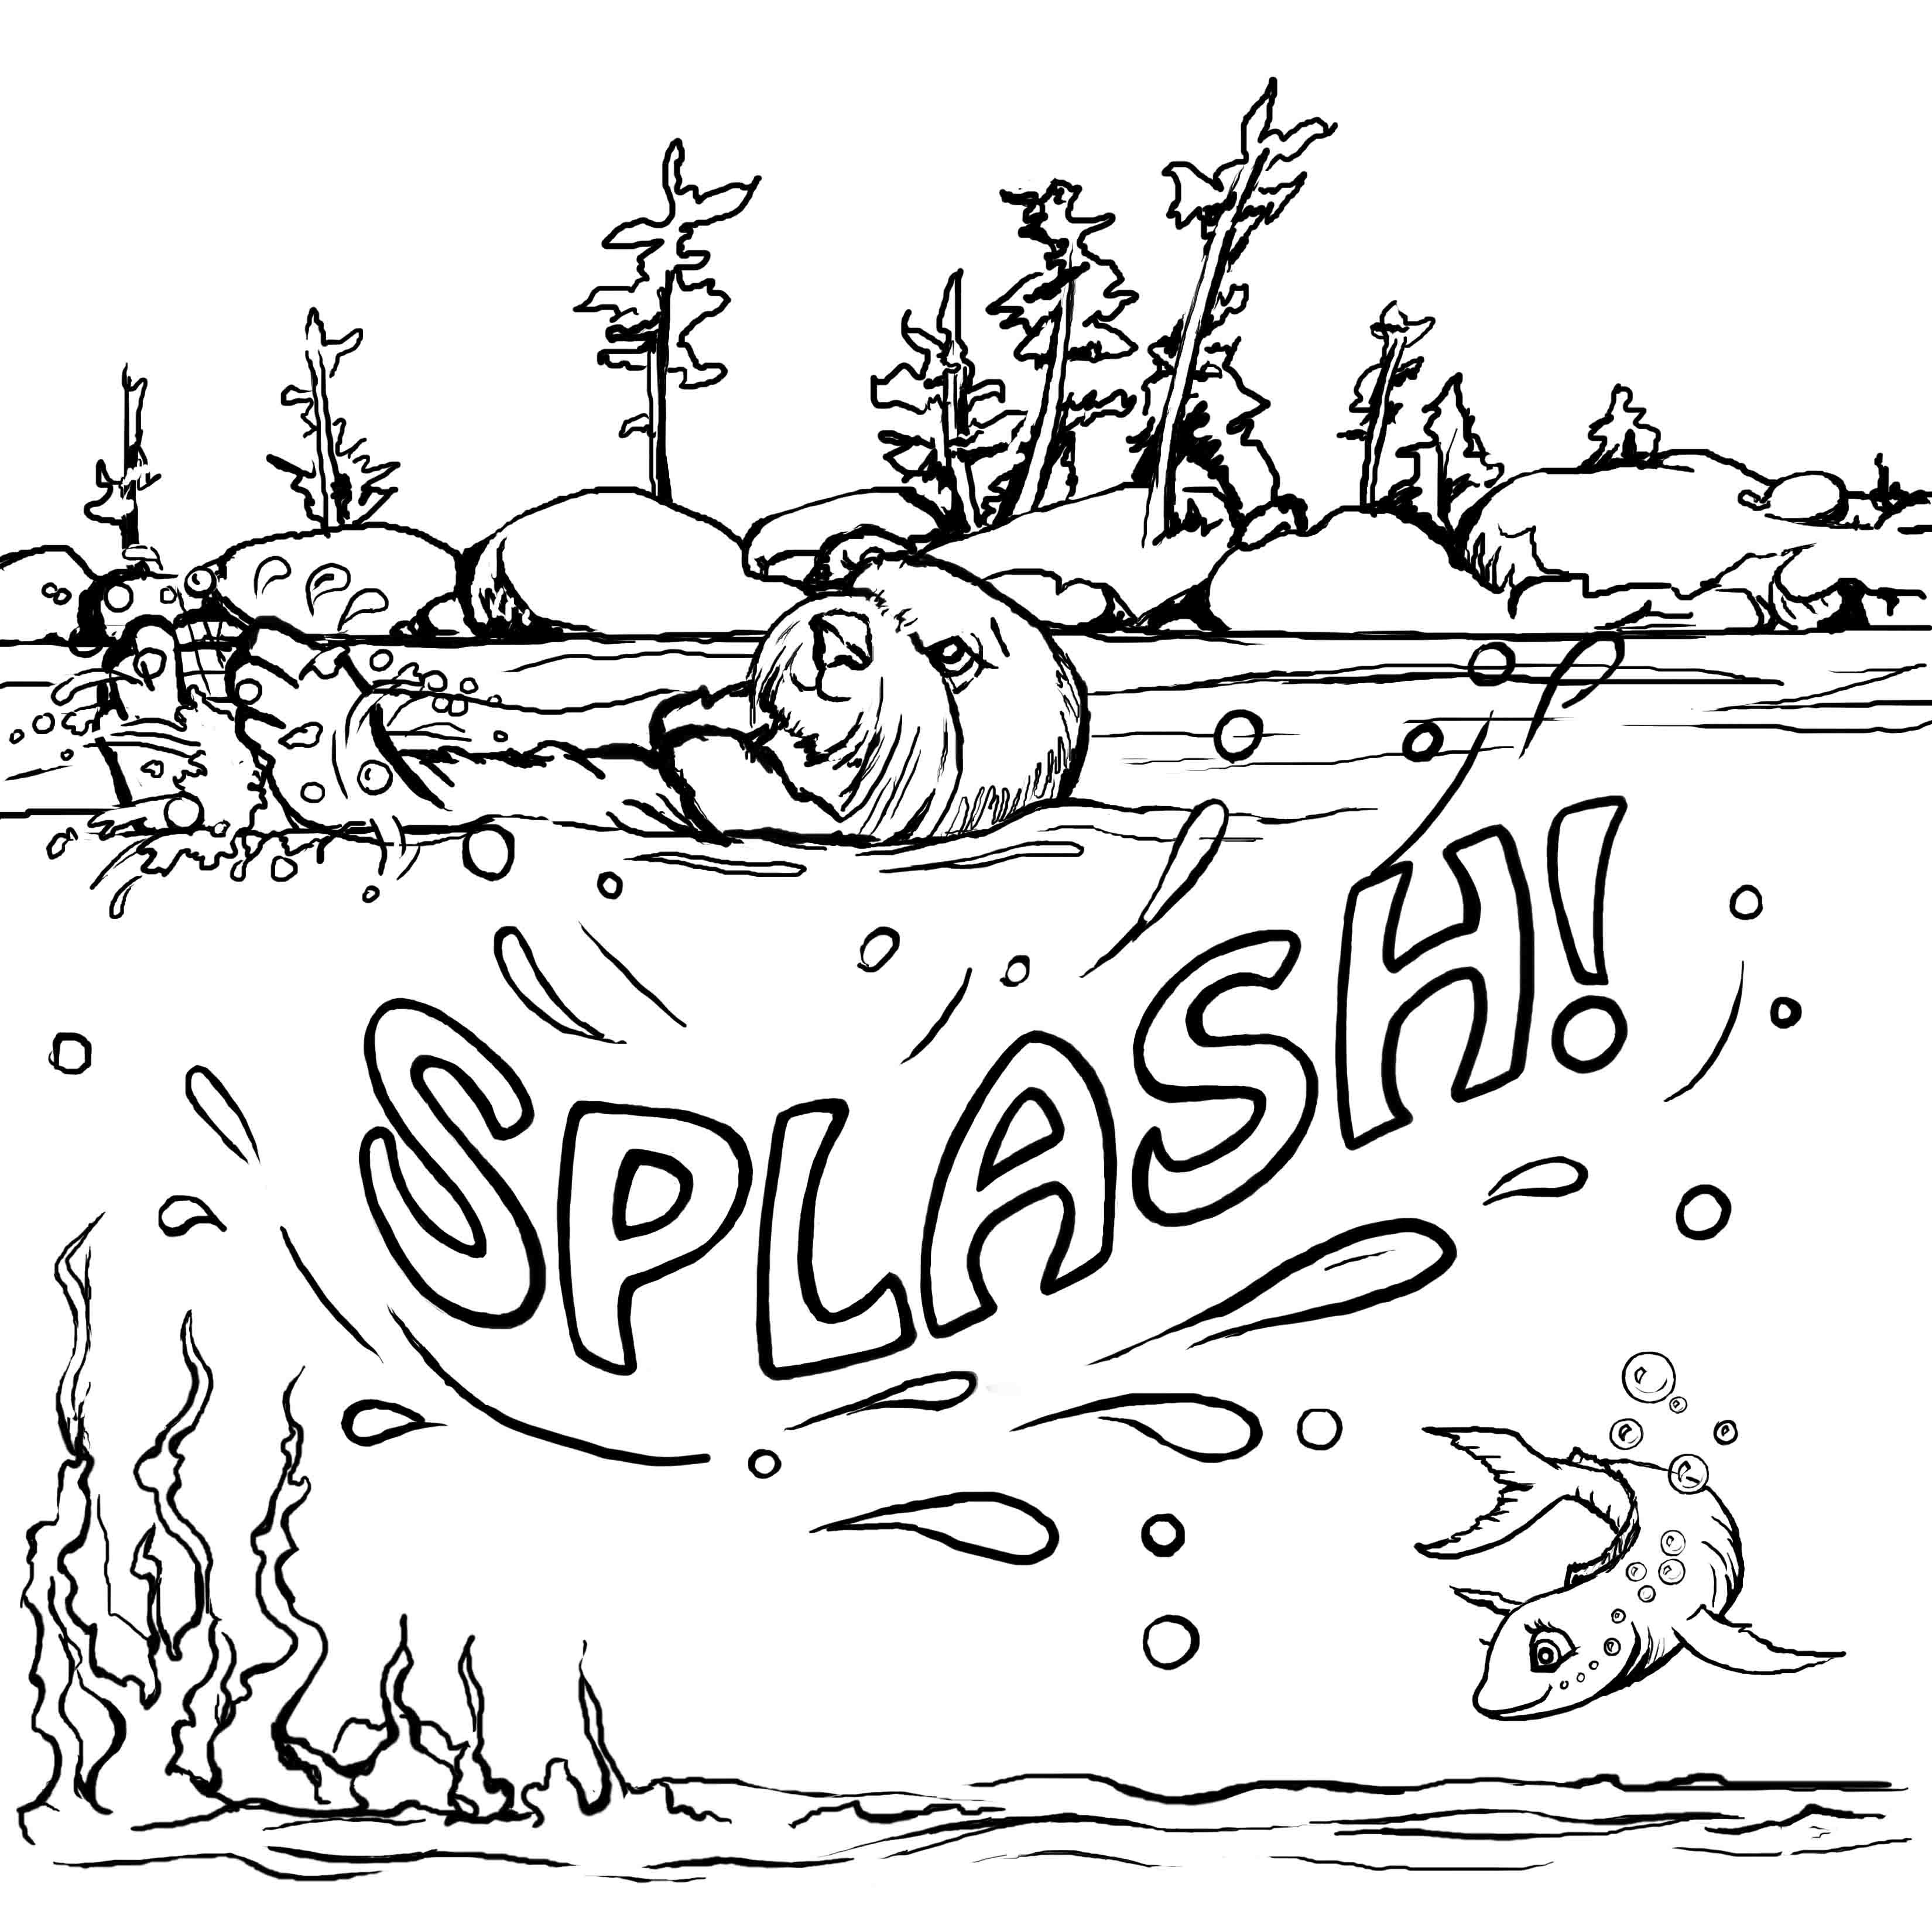 otter coloring page coloring pages josh the otter page otter coloring 1 1